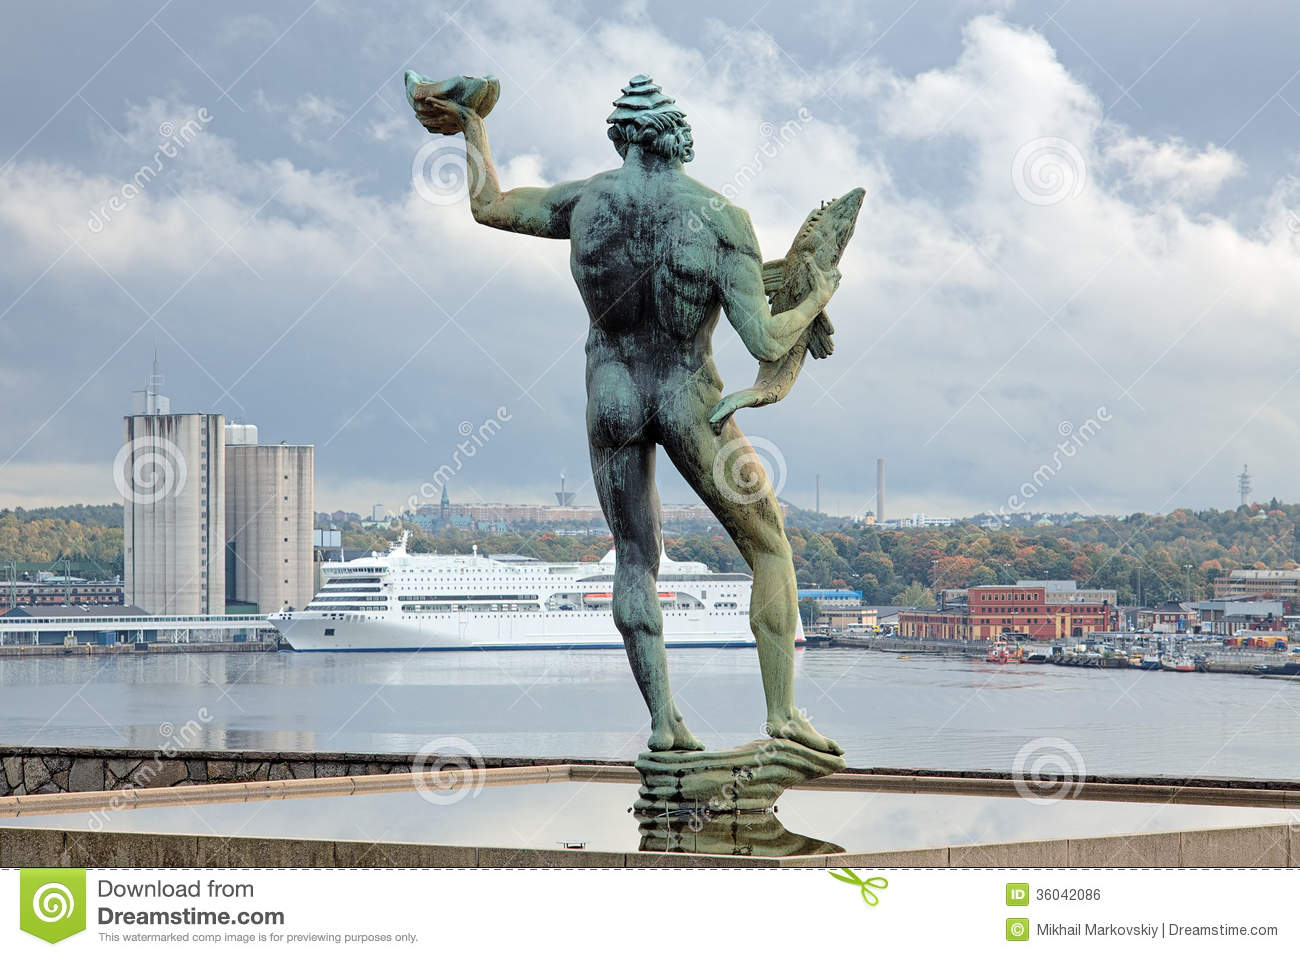 Famous Landmarks Of Stockholm In A Collage All Statues And ...